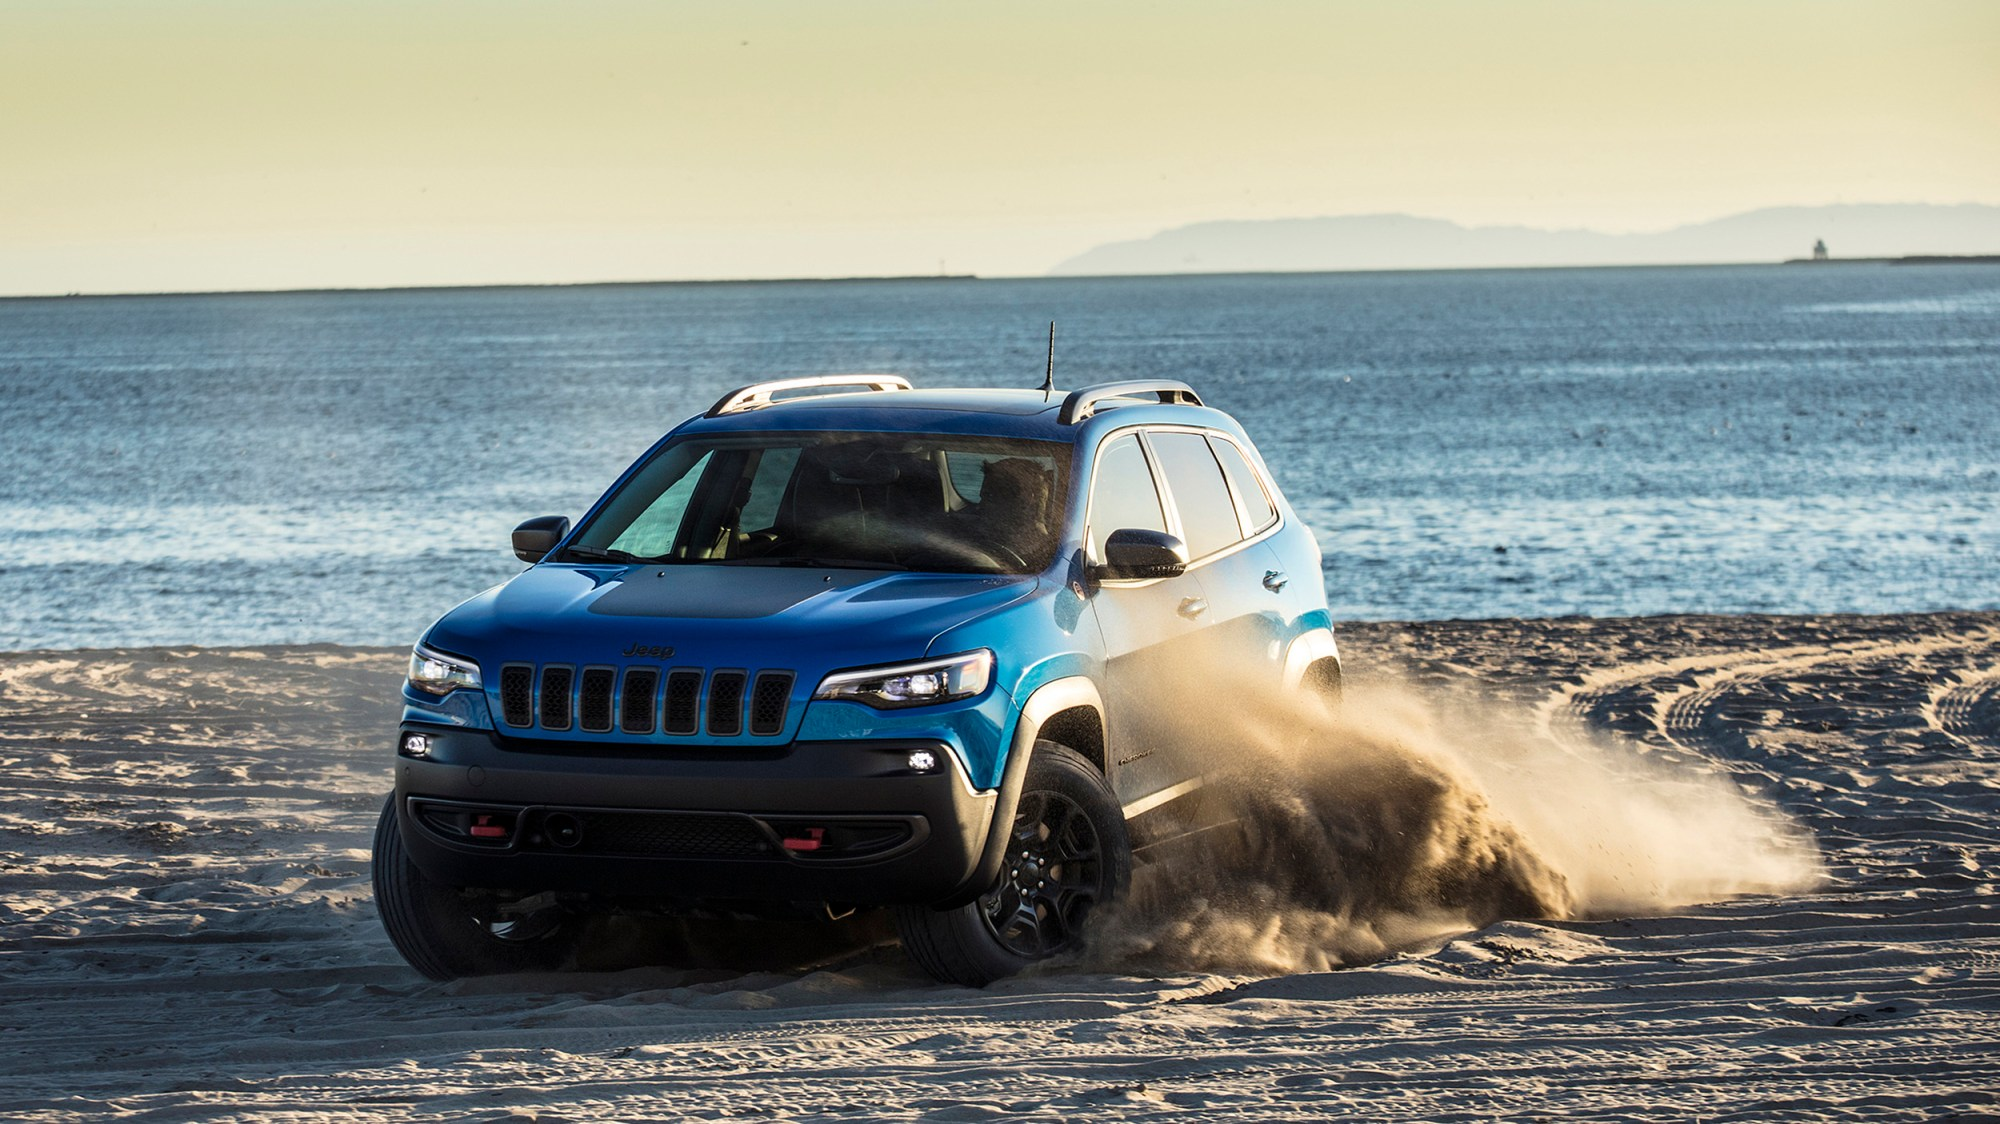 hight resolution of 2019 jeep cherokee is a truck like crossover with advantages off road but issues on road autoblog